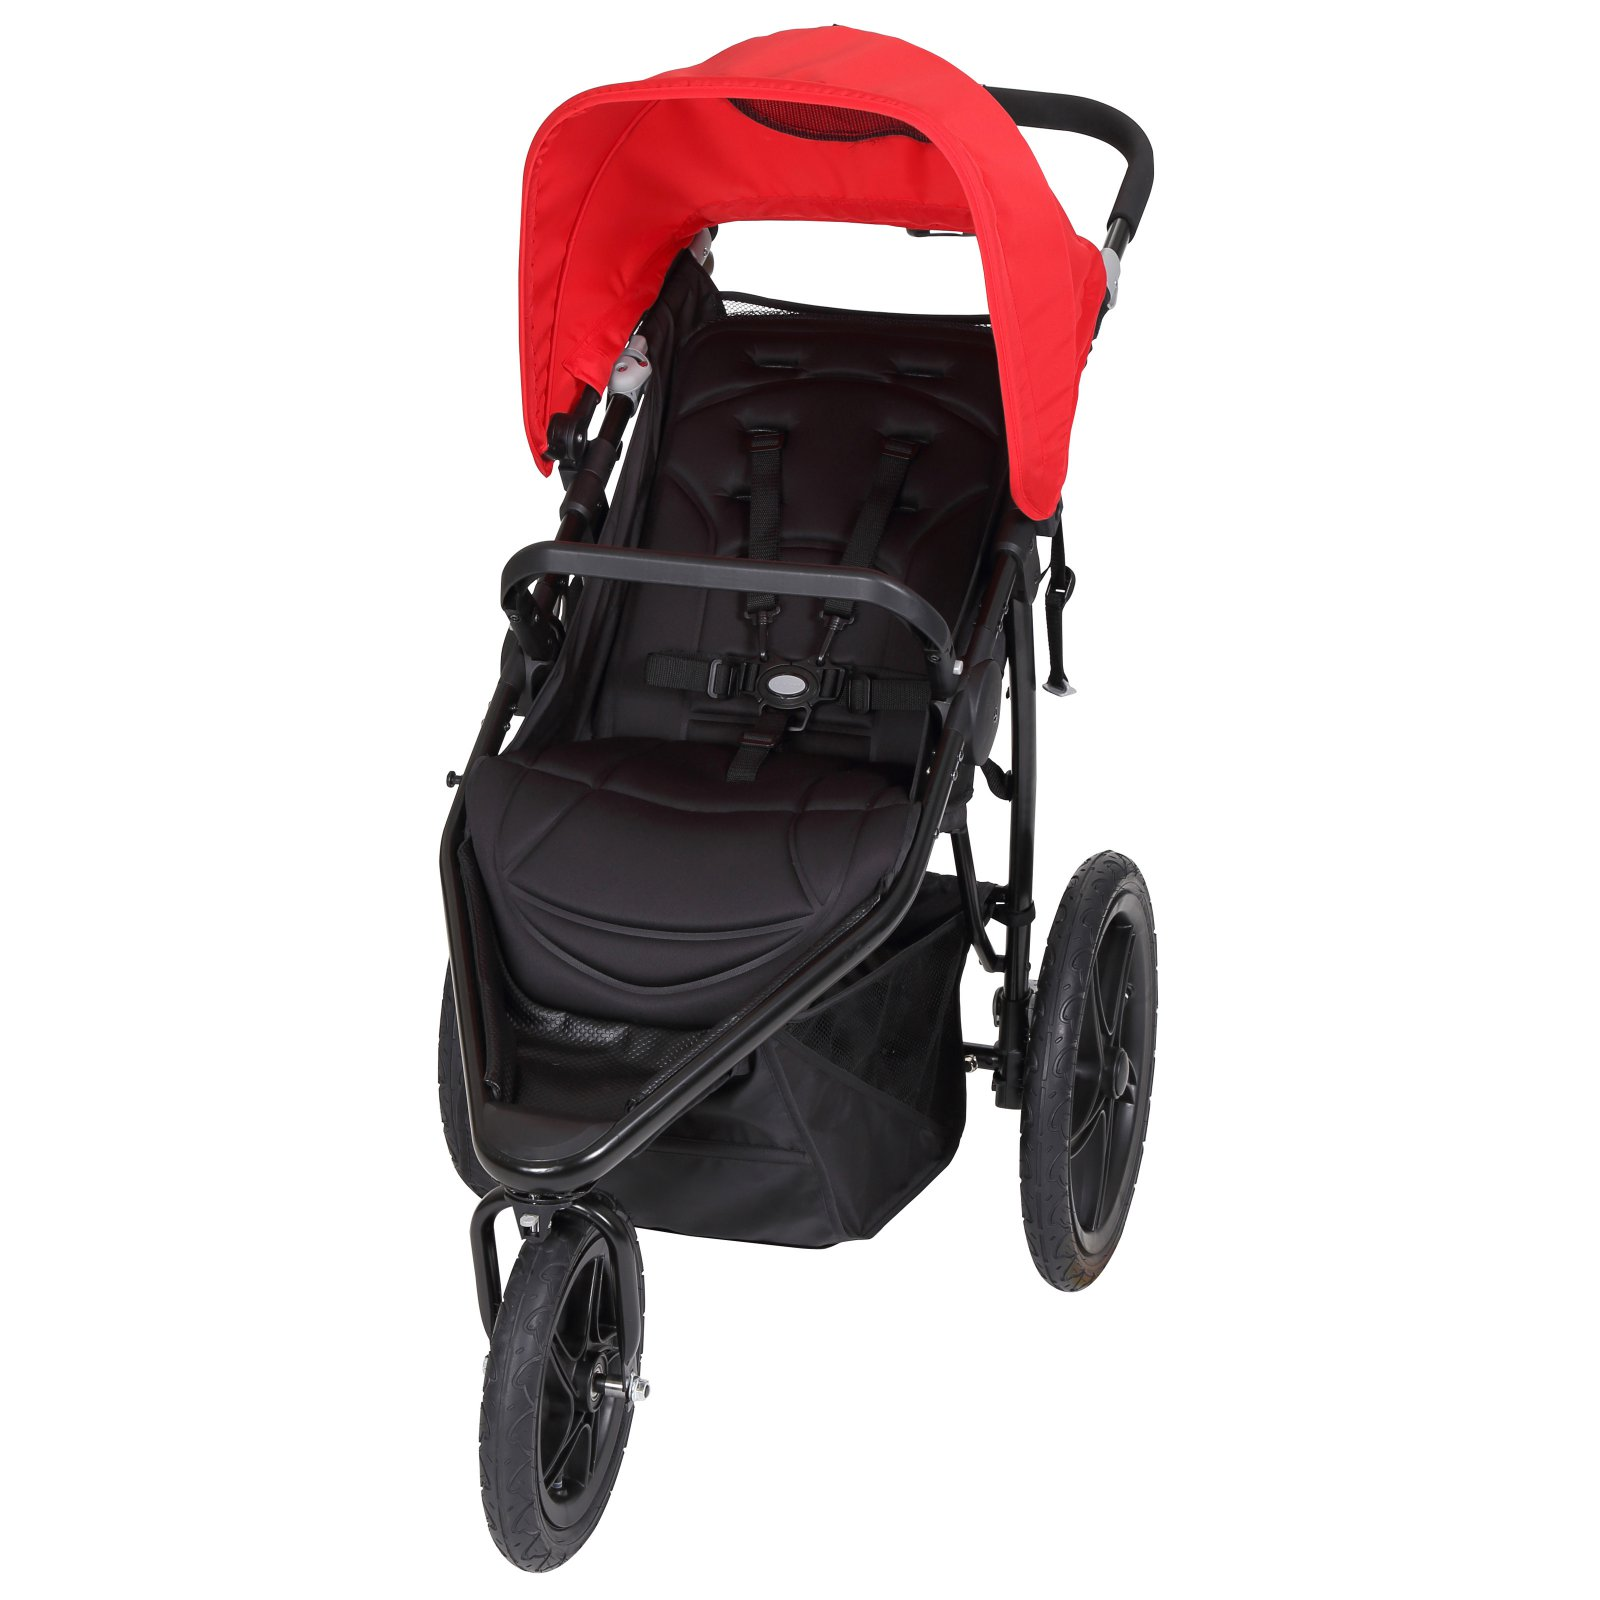 Baby Trend Stealth Jogger, Cardinal